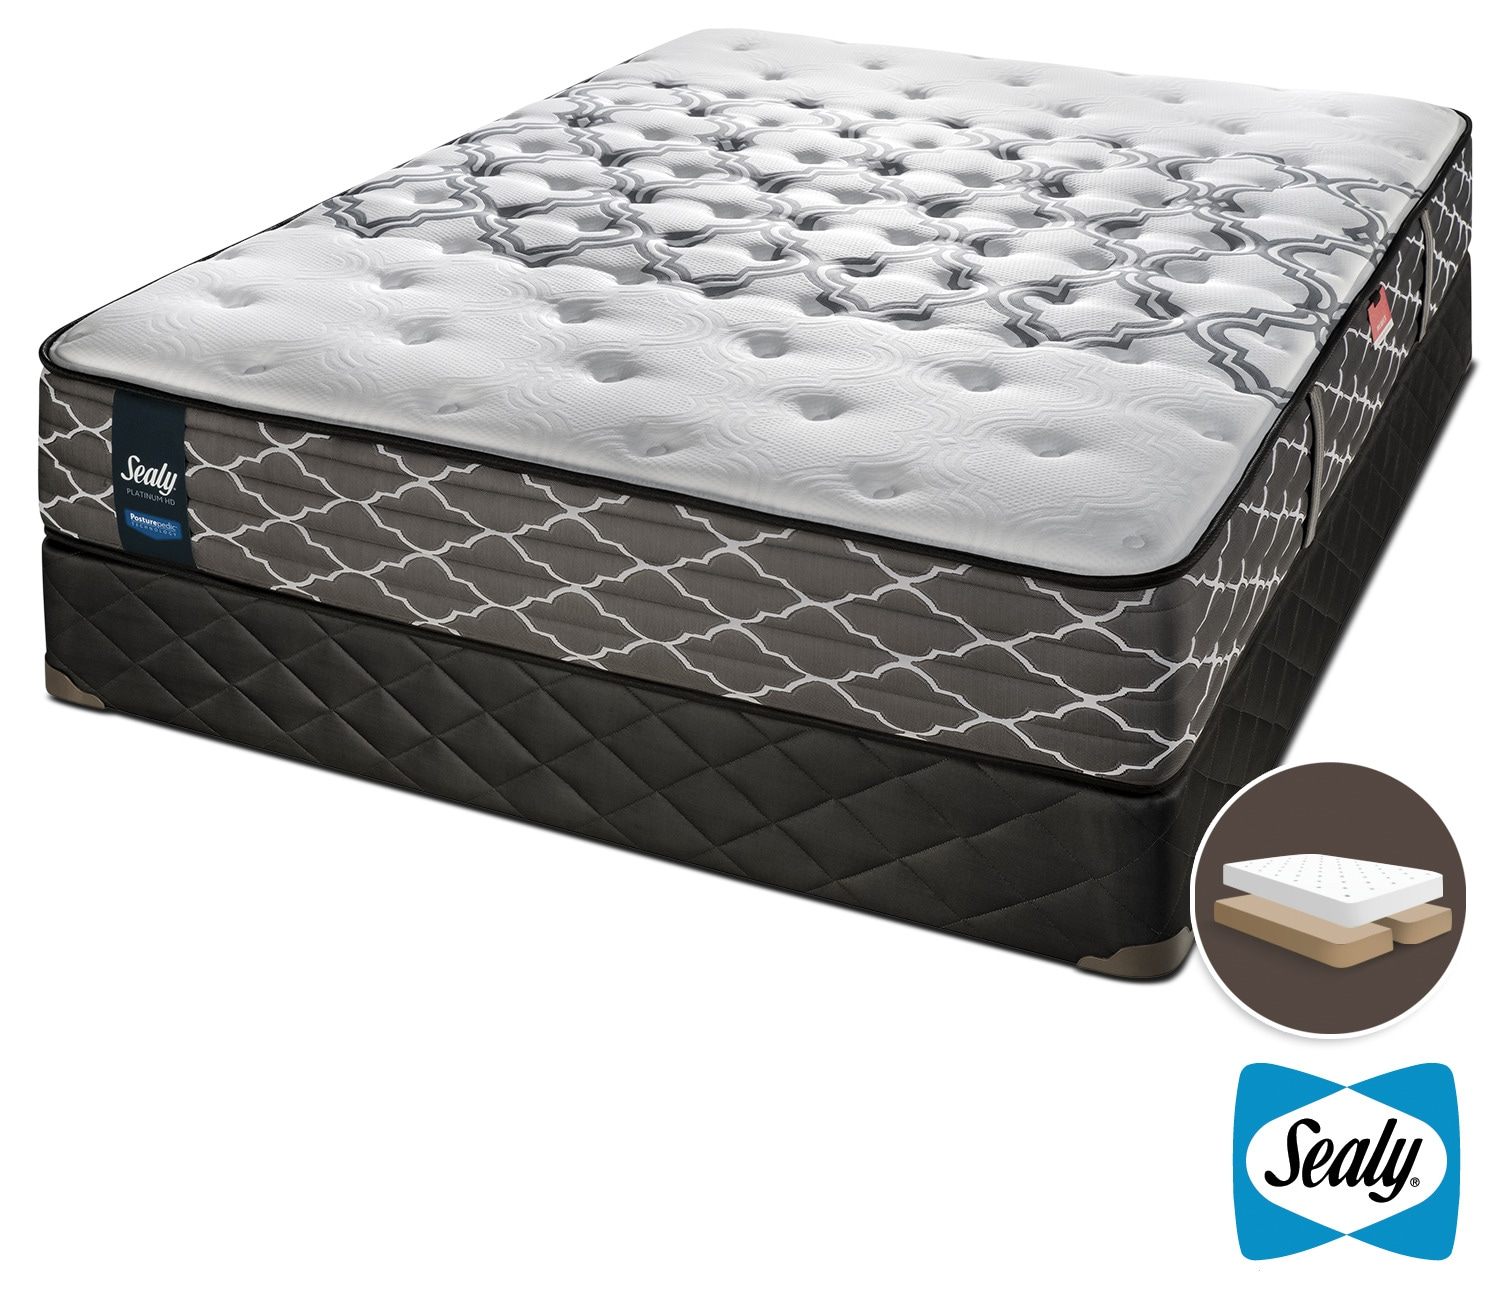 Mattresses and Bedding - Sealy Late Night Hybrid Extra Firm Queen Mattress and Split Boxspring Set